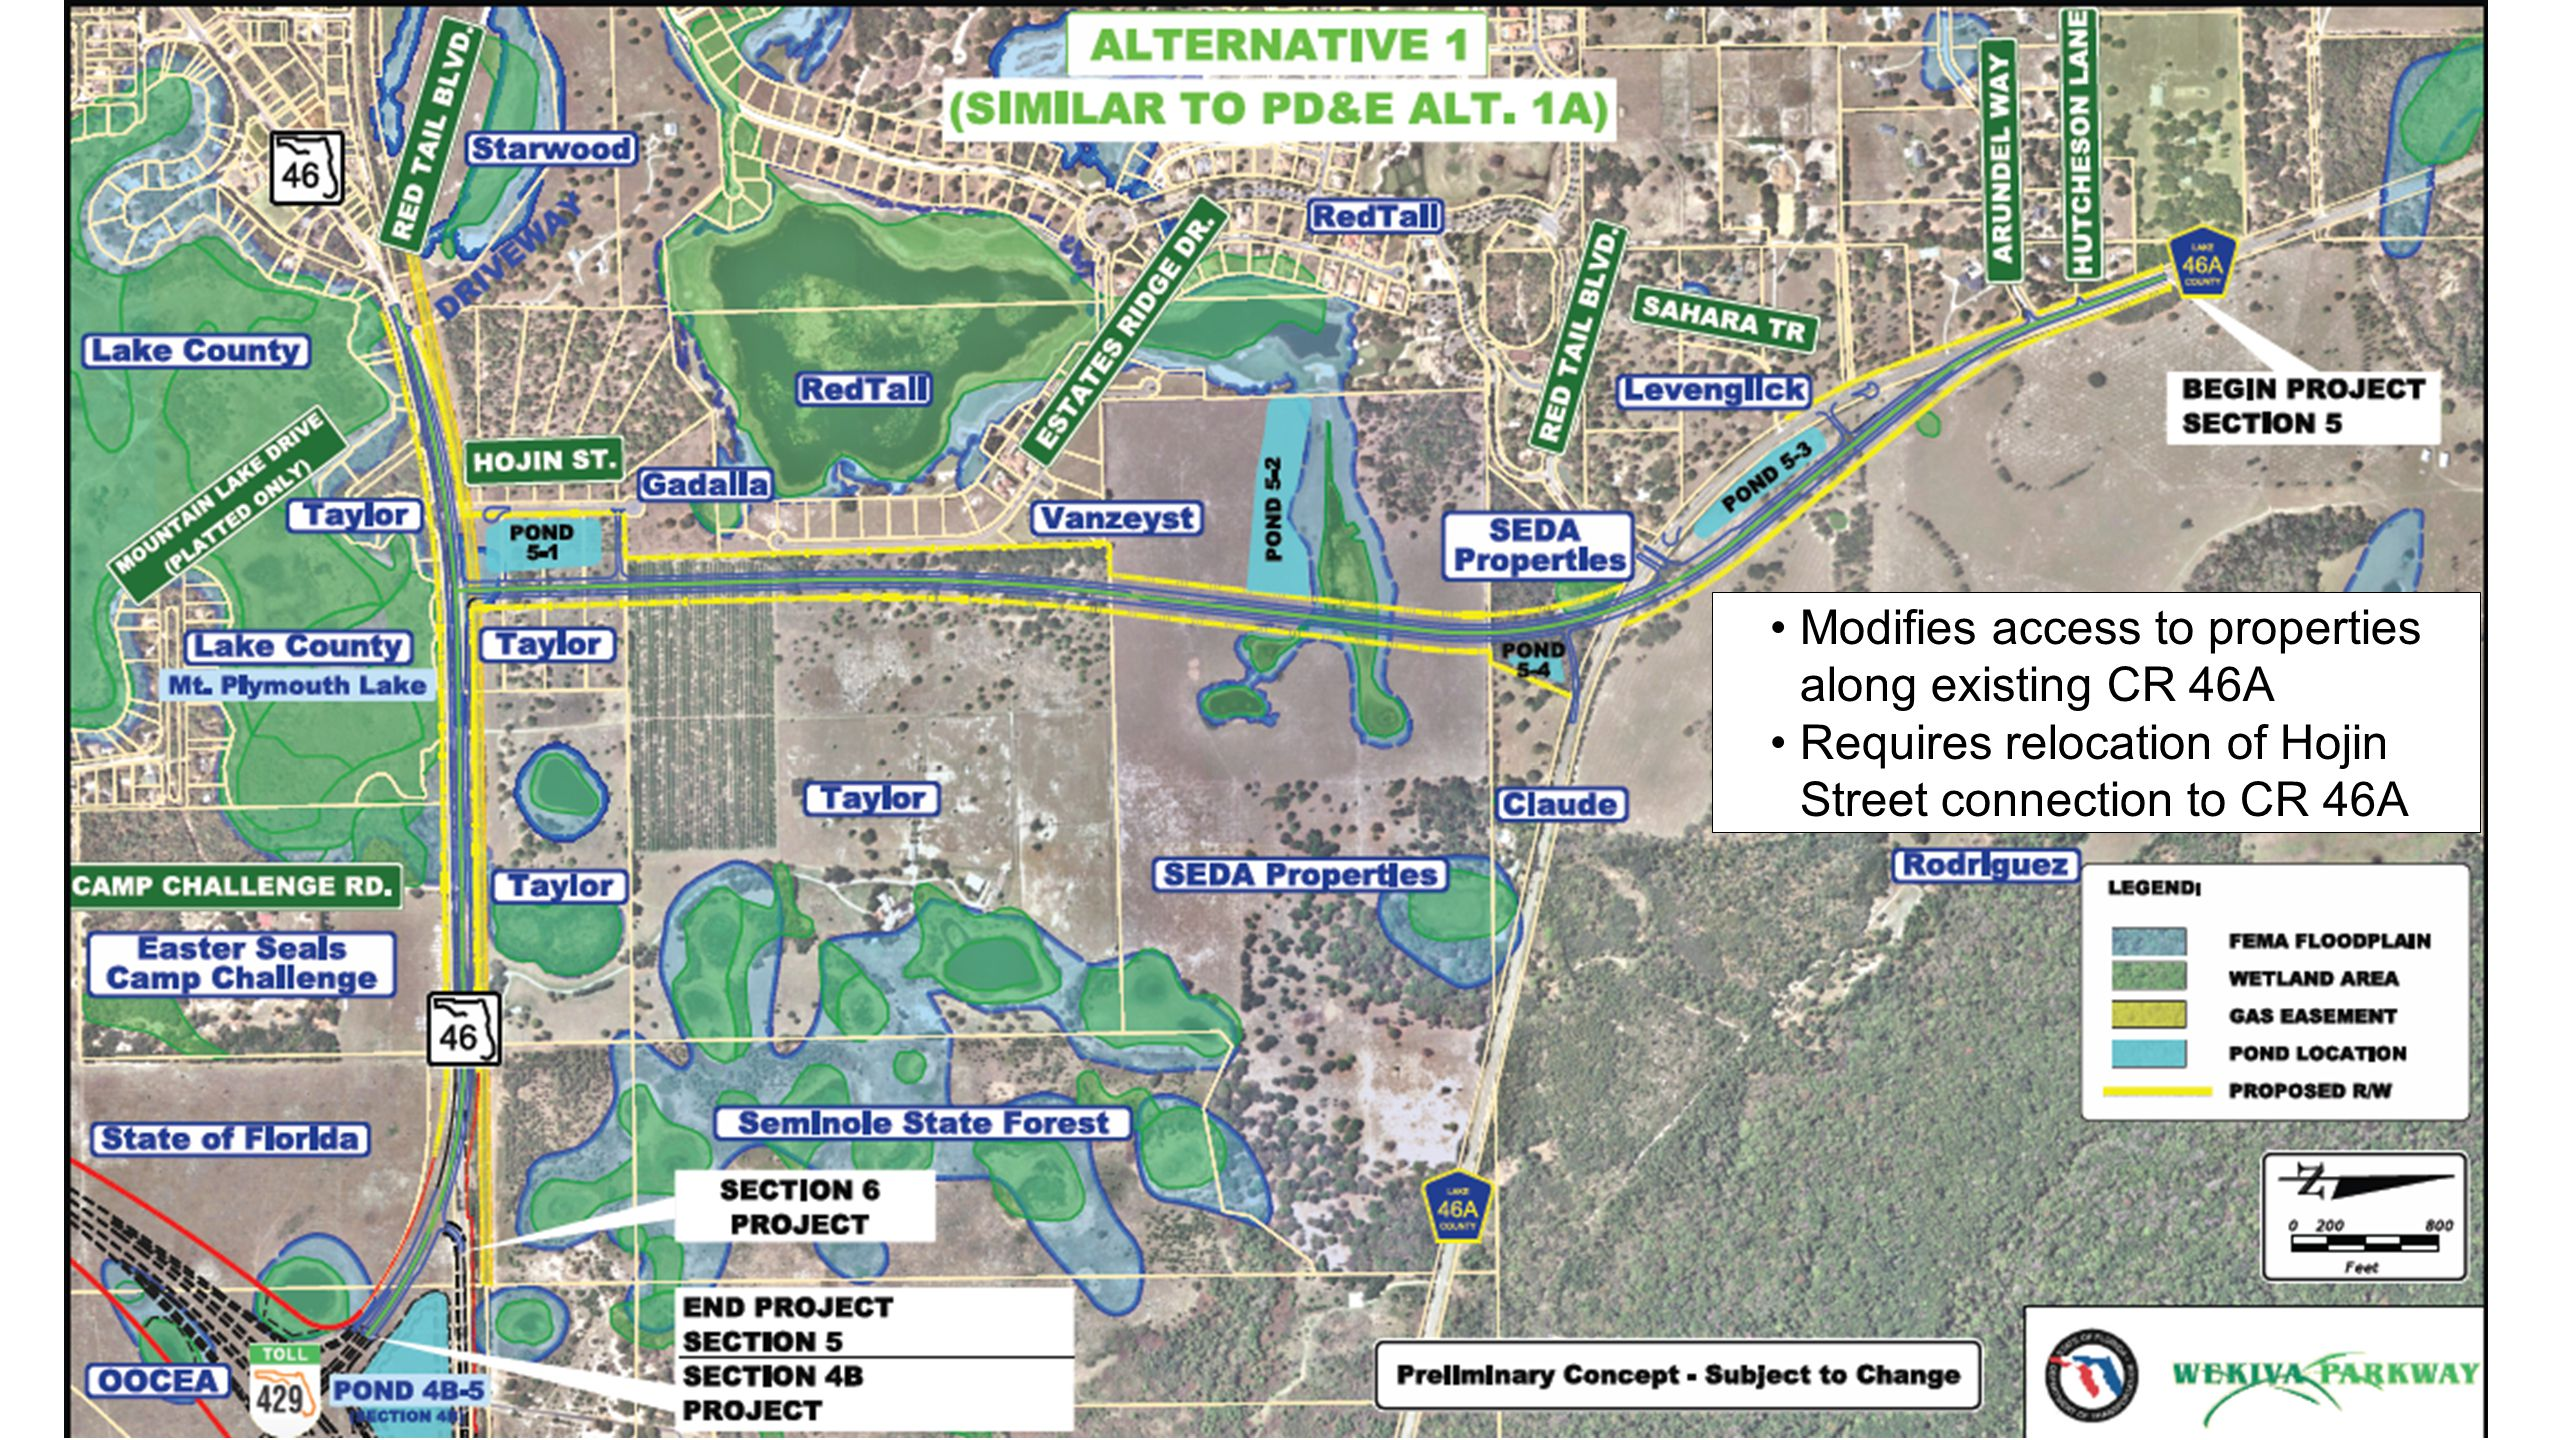 OOCEA SECTIONS Alignment Alternative 1